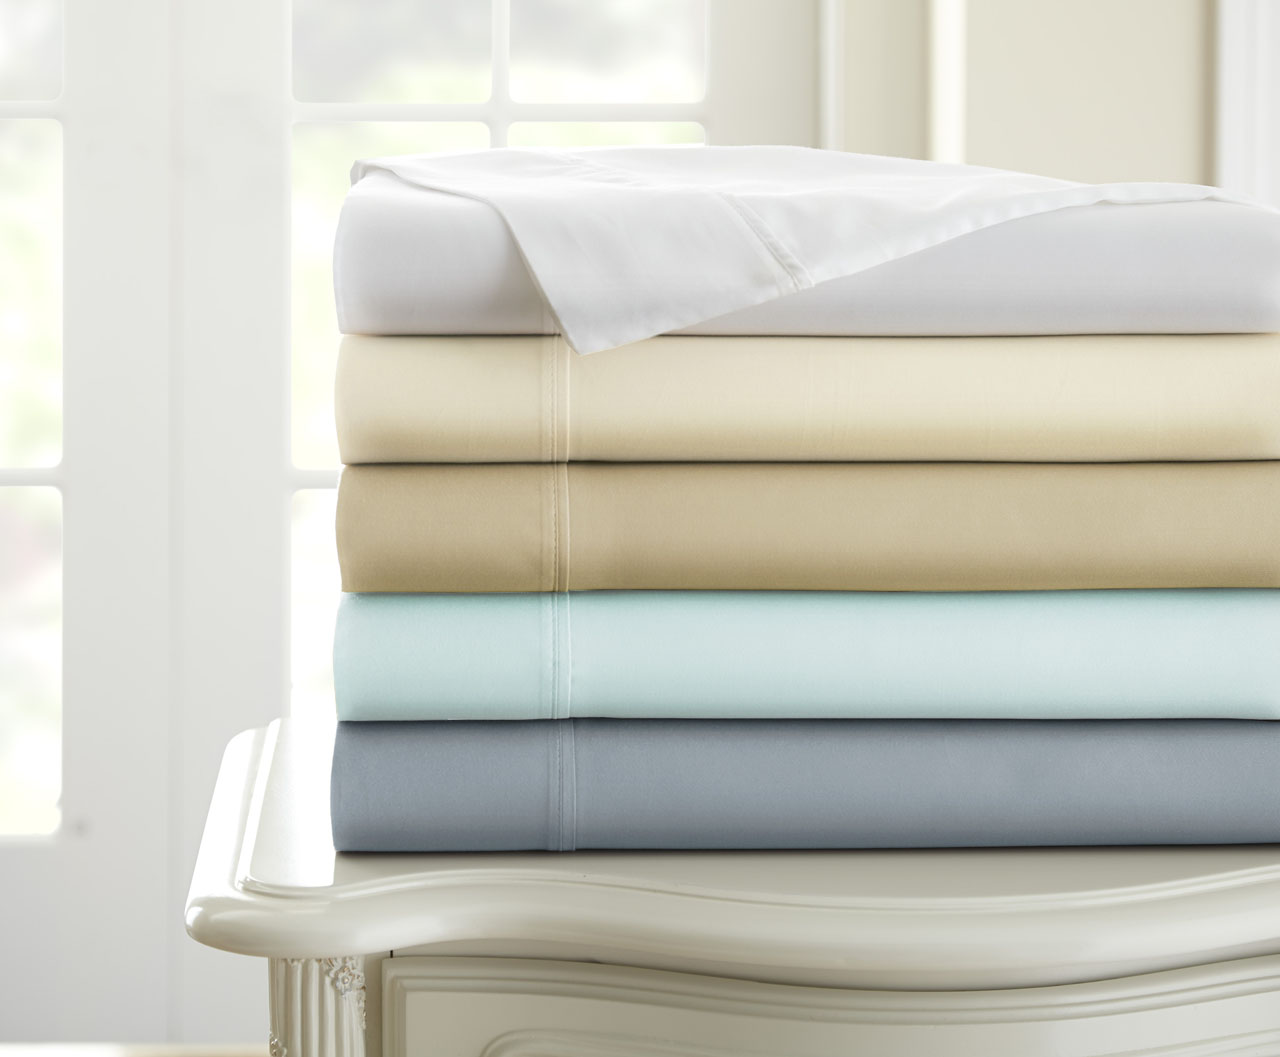 King 800 Thread Count Sheets